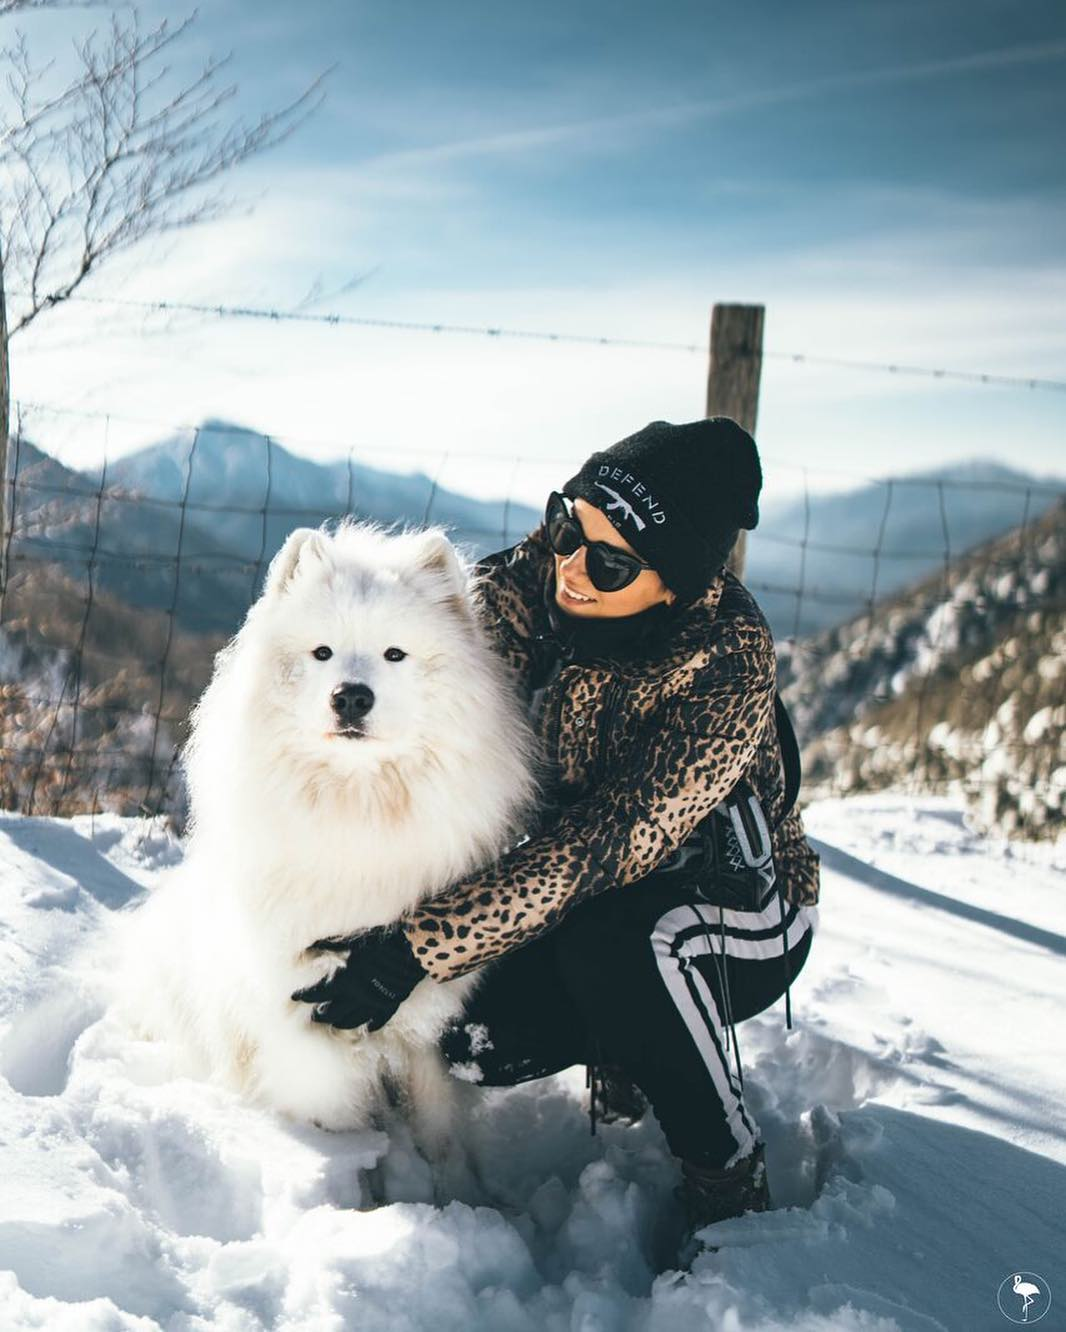 2019-01-26 - My « King in the north » ❄️ @jonsnow_lyonnet #samoyed #gameofthrones #jonsnow #kinginthenorth photo @flamingyo24